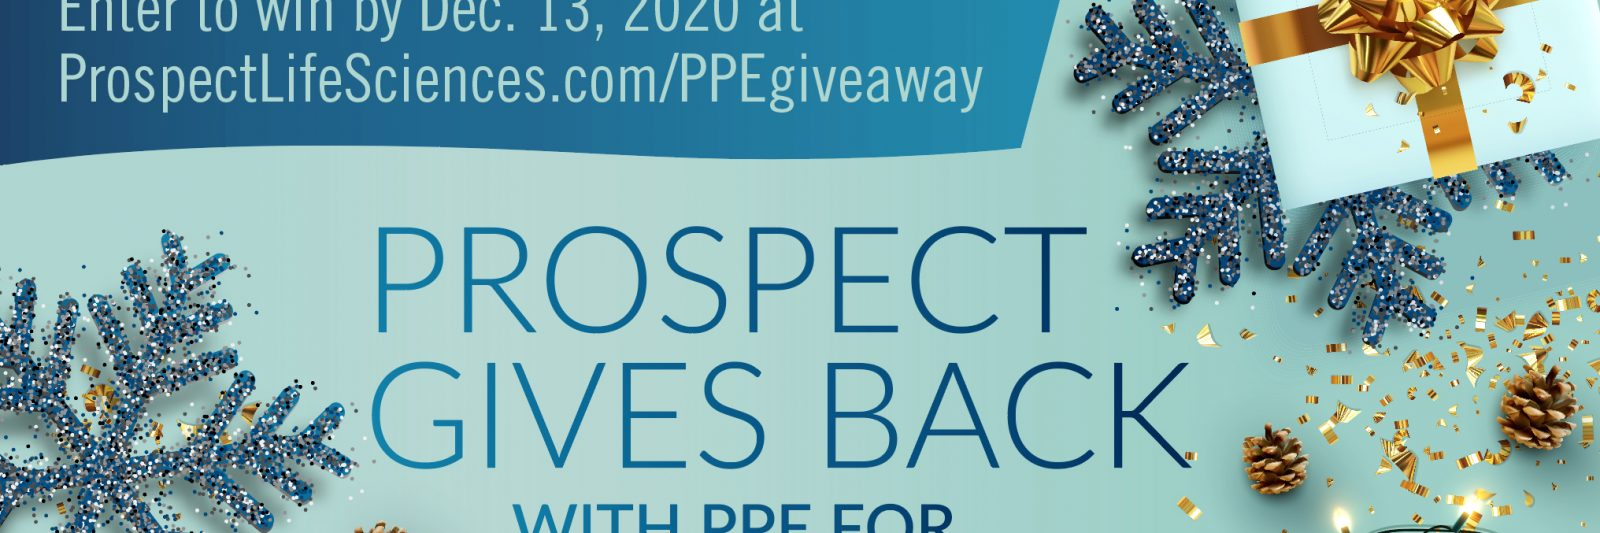 Prospect Gives Back with PPE for our community